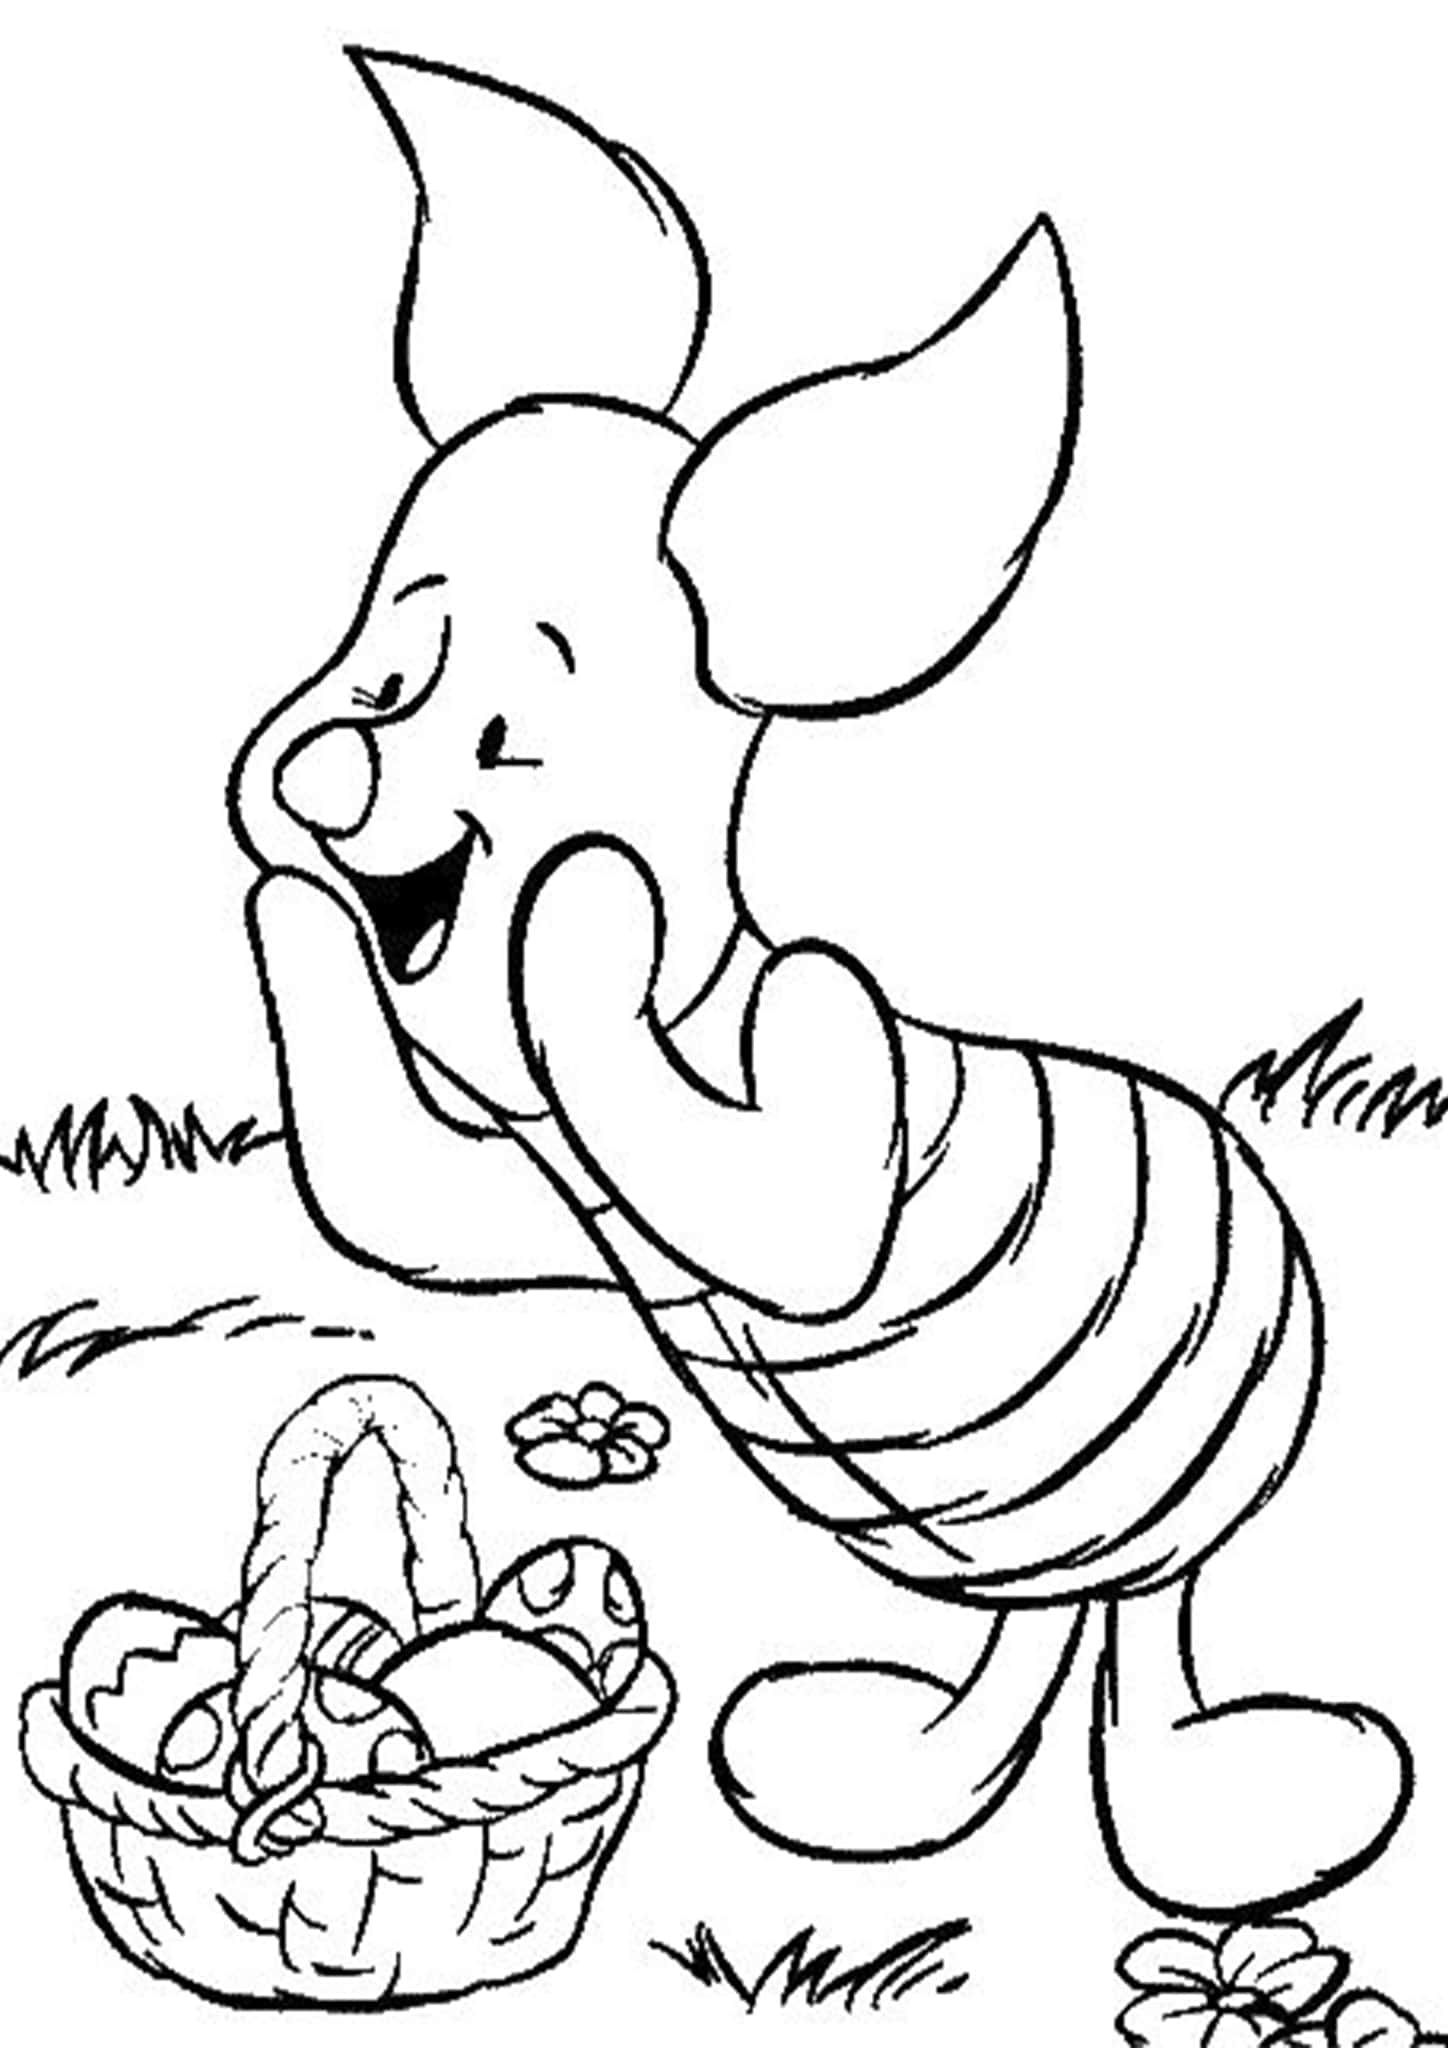 Free Easy To Print Winnie The Pooh Coloring Pages Easter Coloring Pictures Easter Coloring Pages Disney Coloring Pages